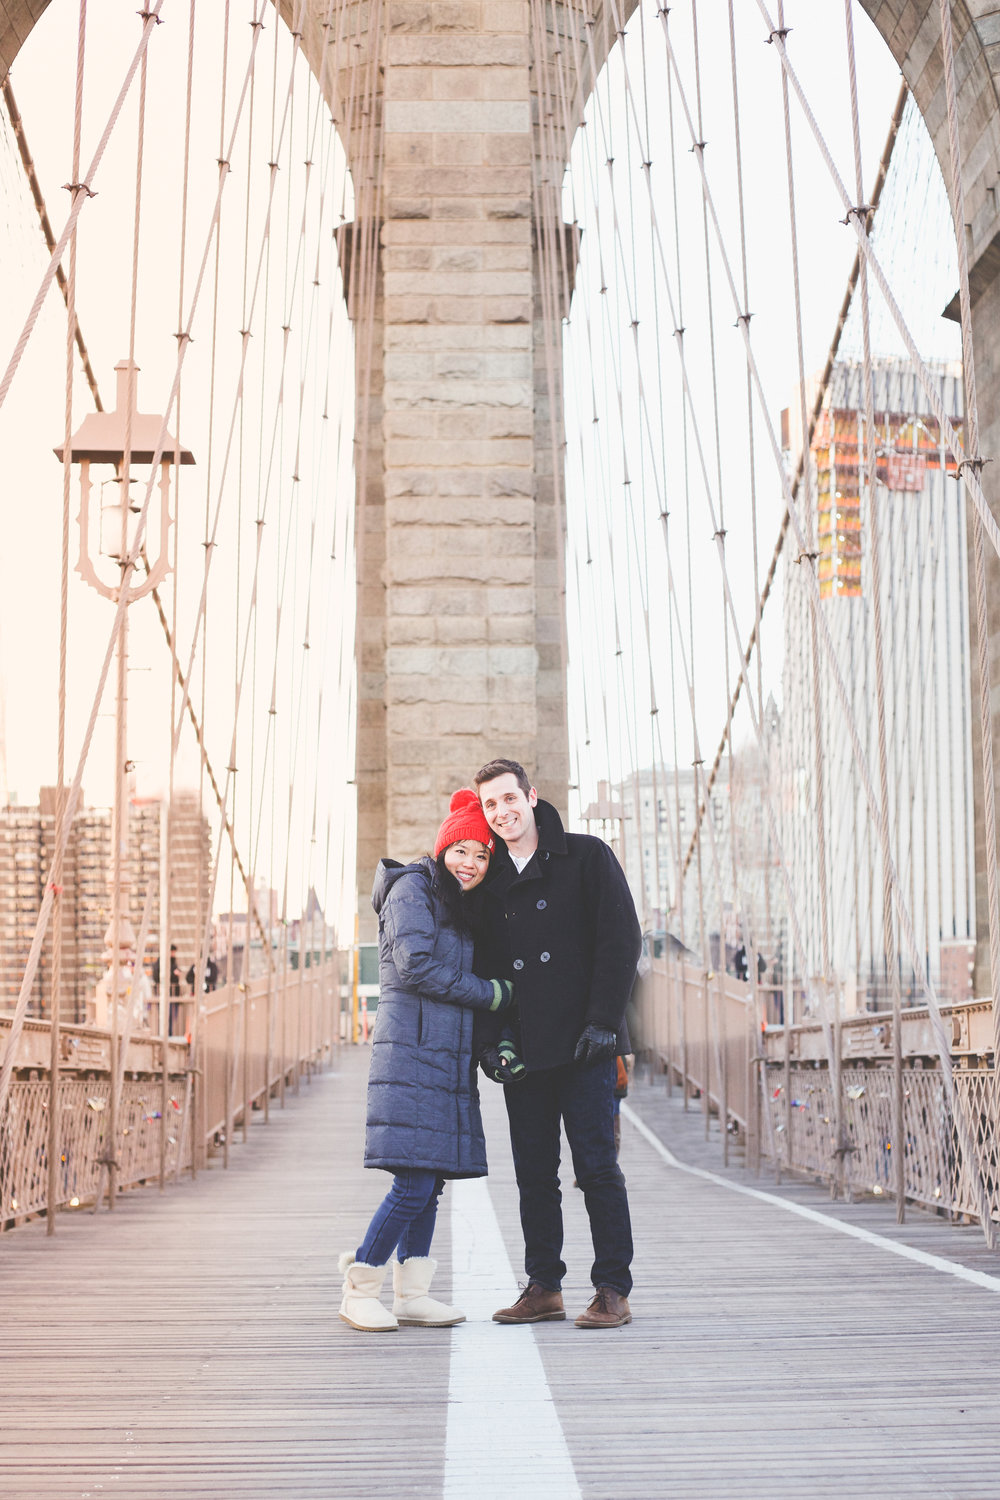 brooklynbridgeproposal